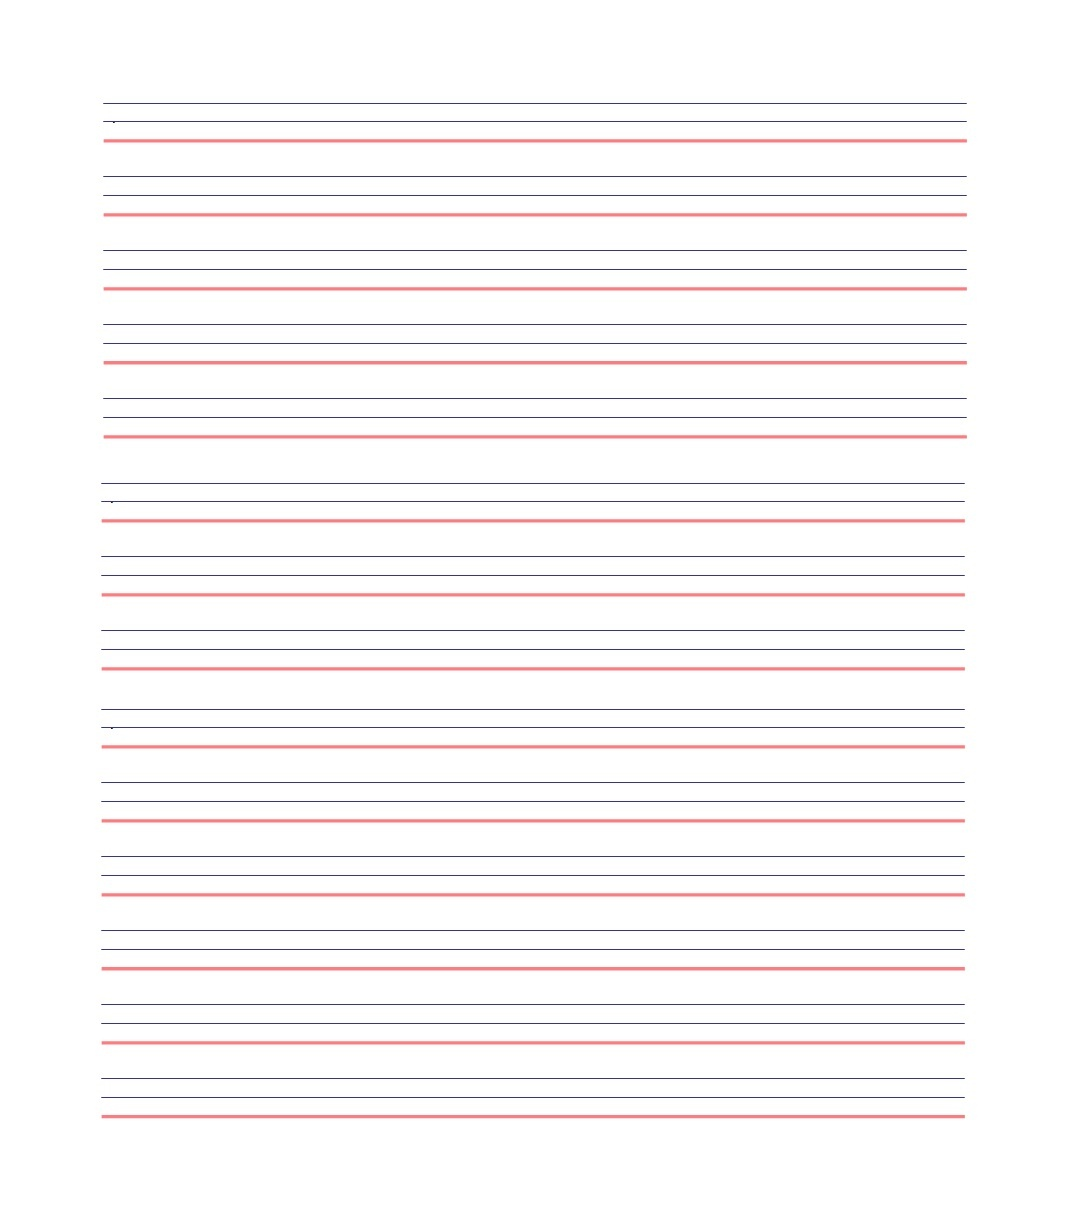 32 Printable Lined Paper Templates ᐅ Template Lab - Free Printable Lined Writing Paper